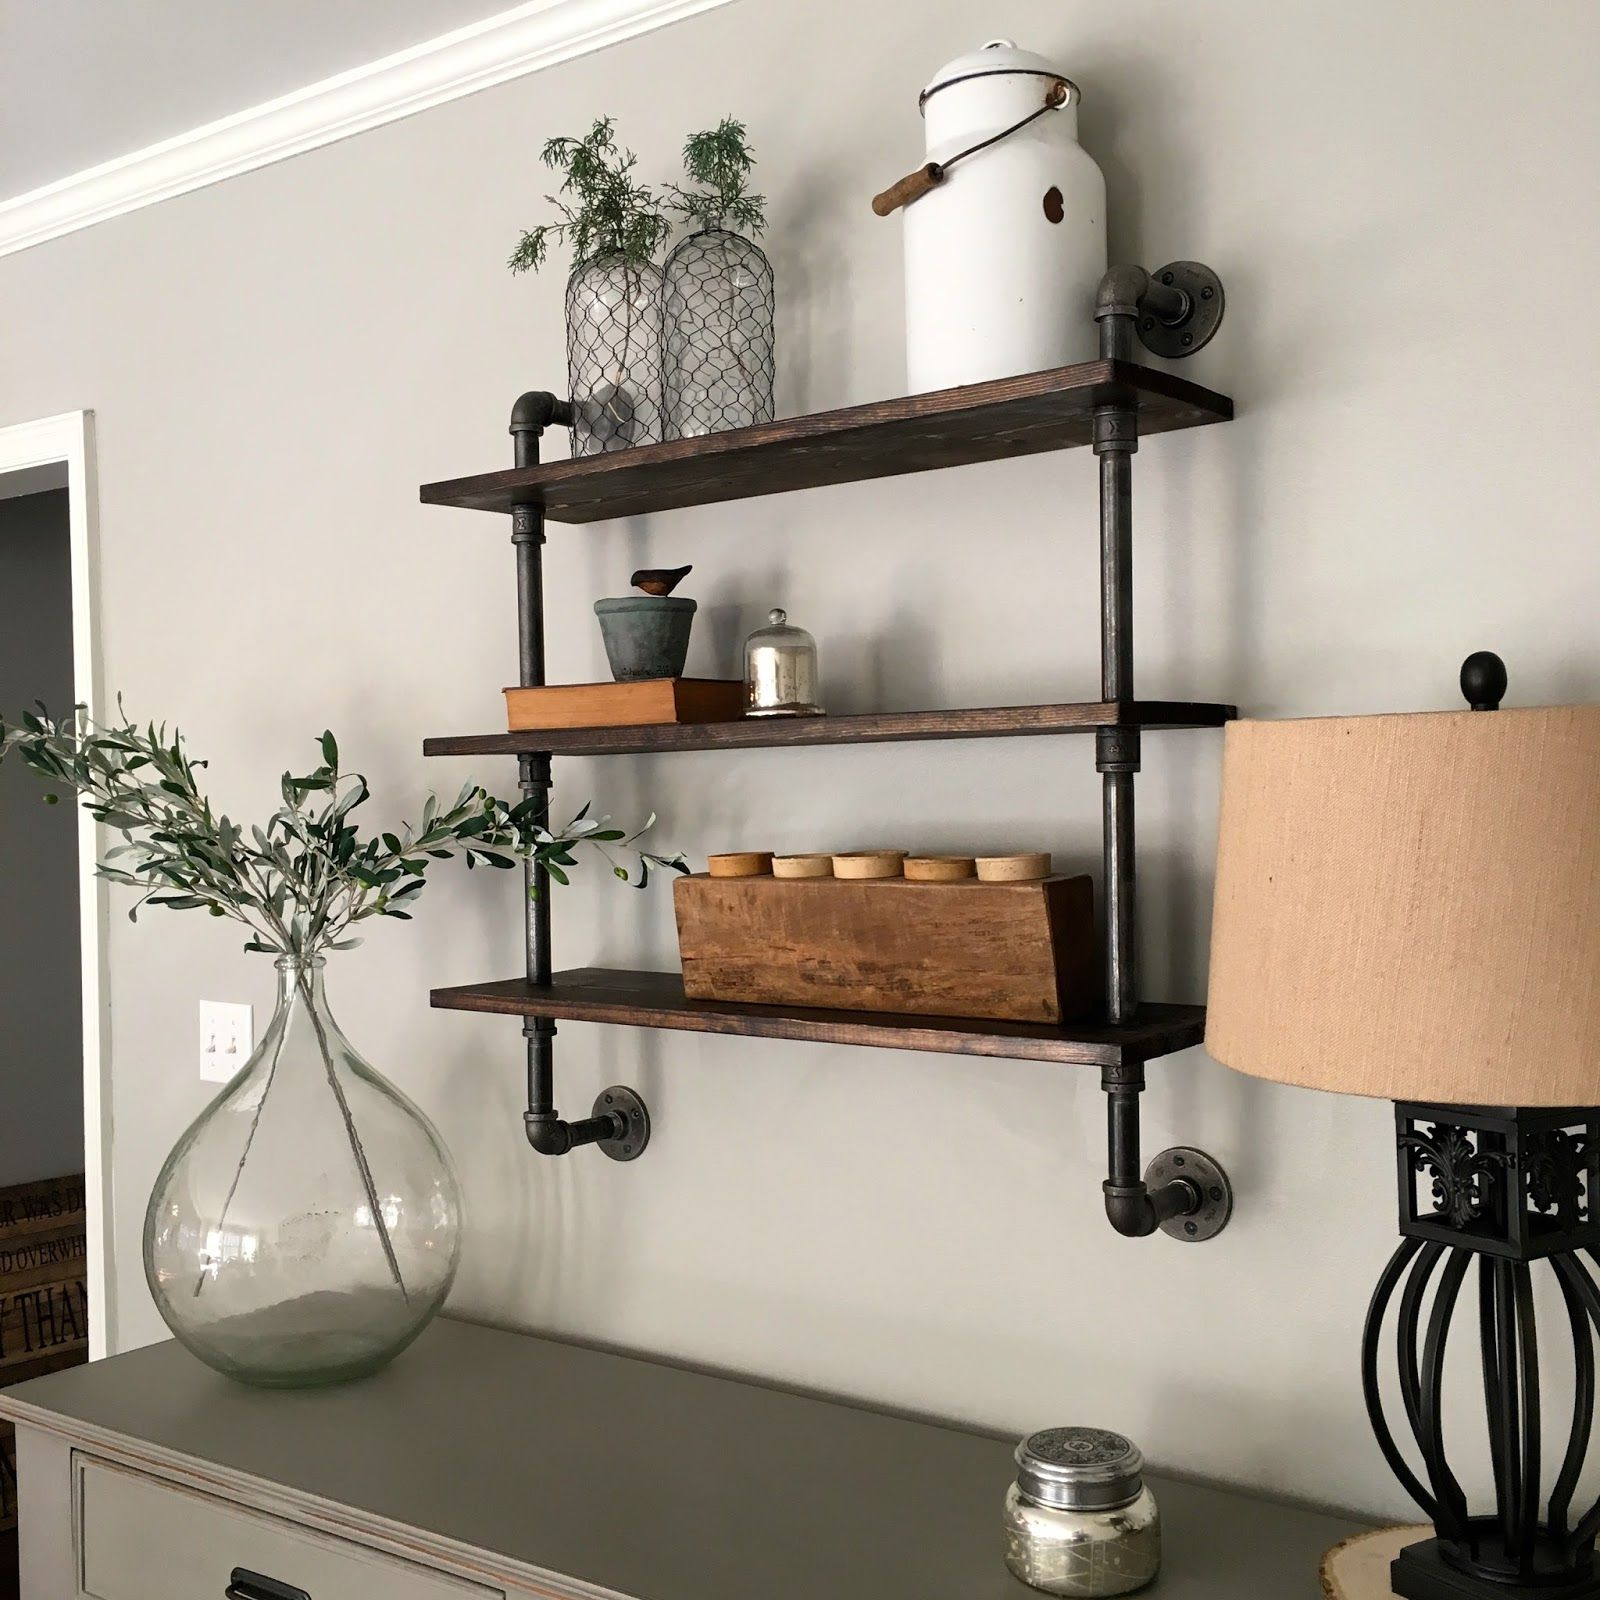 How to Choose the Best Shelving Structures